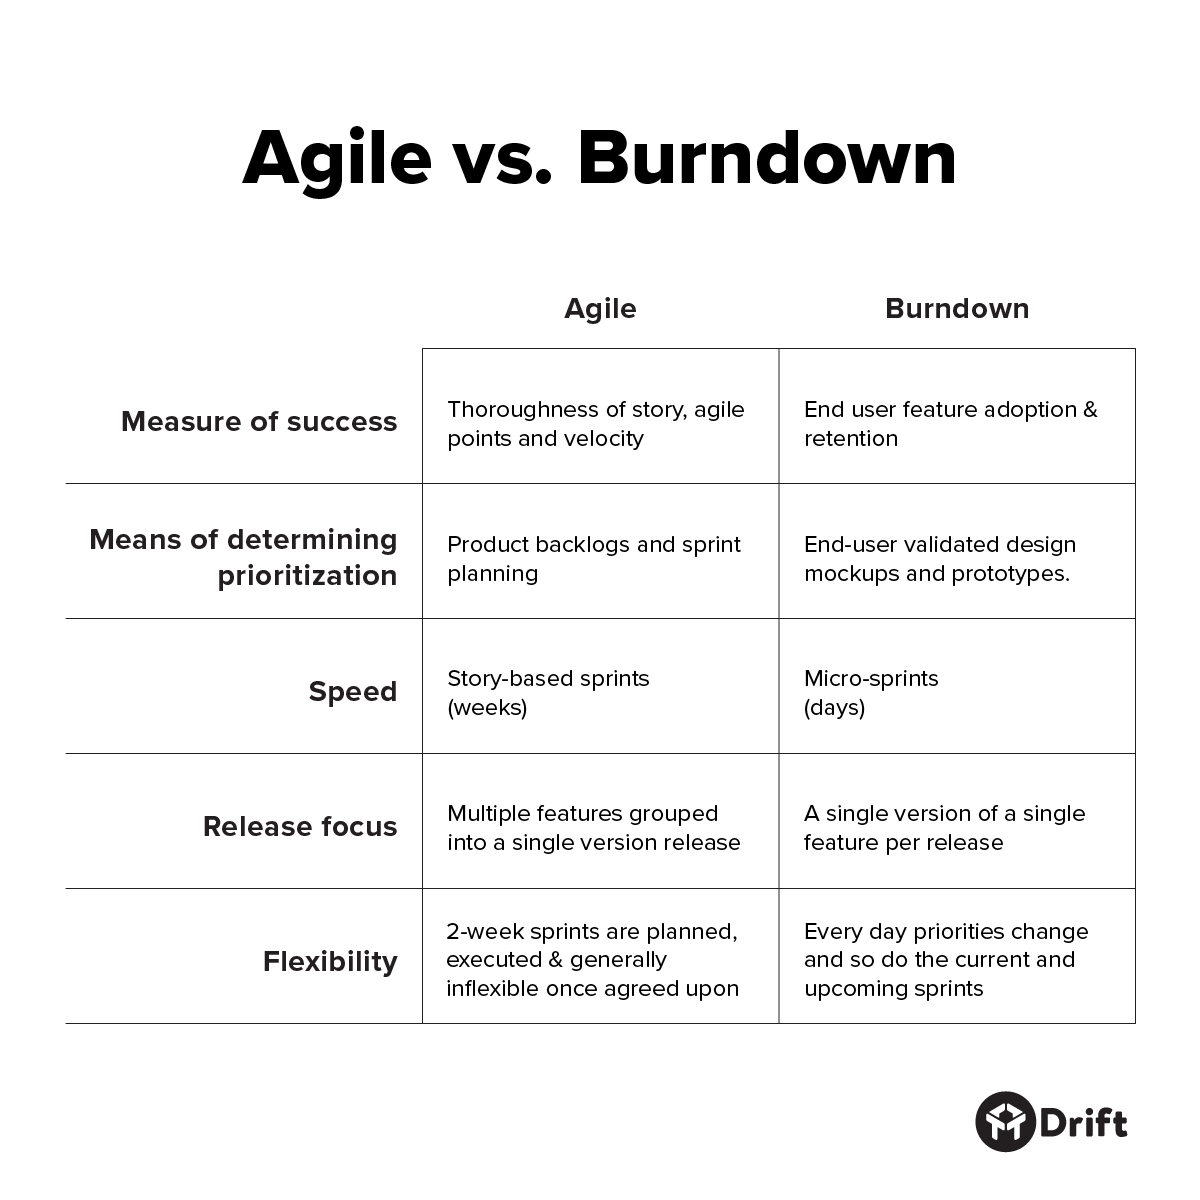 Agile Project Management vs. Burndown Framework